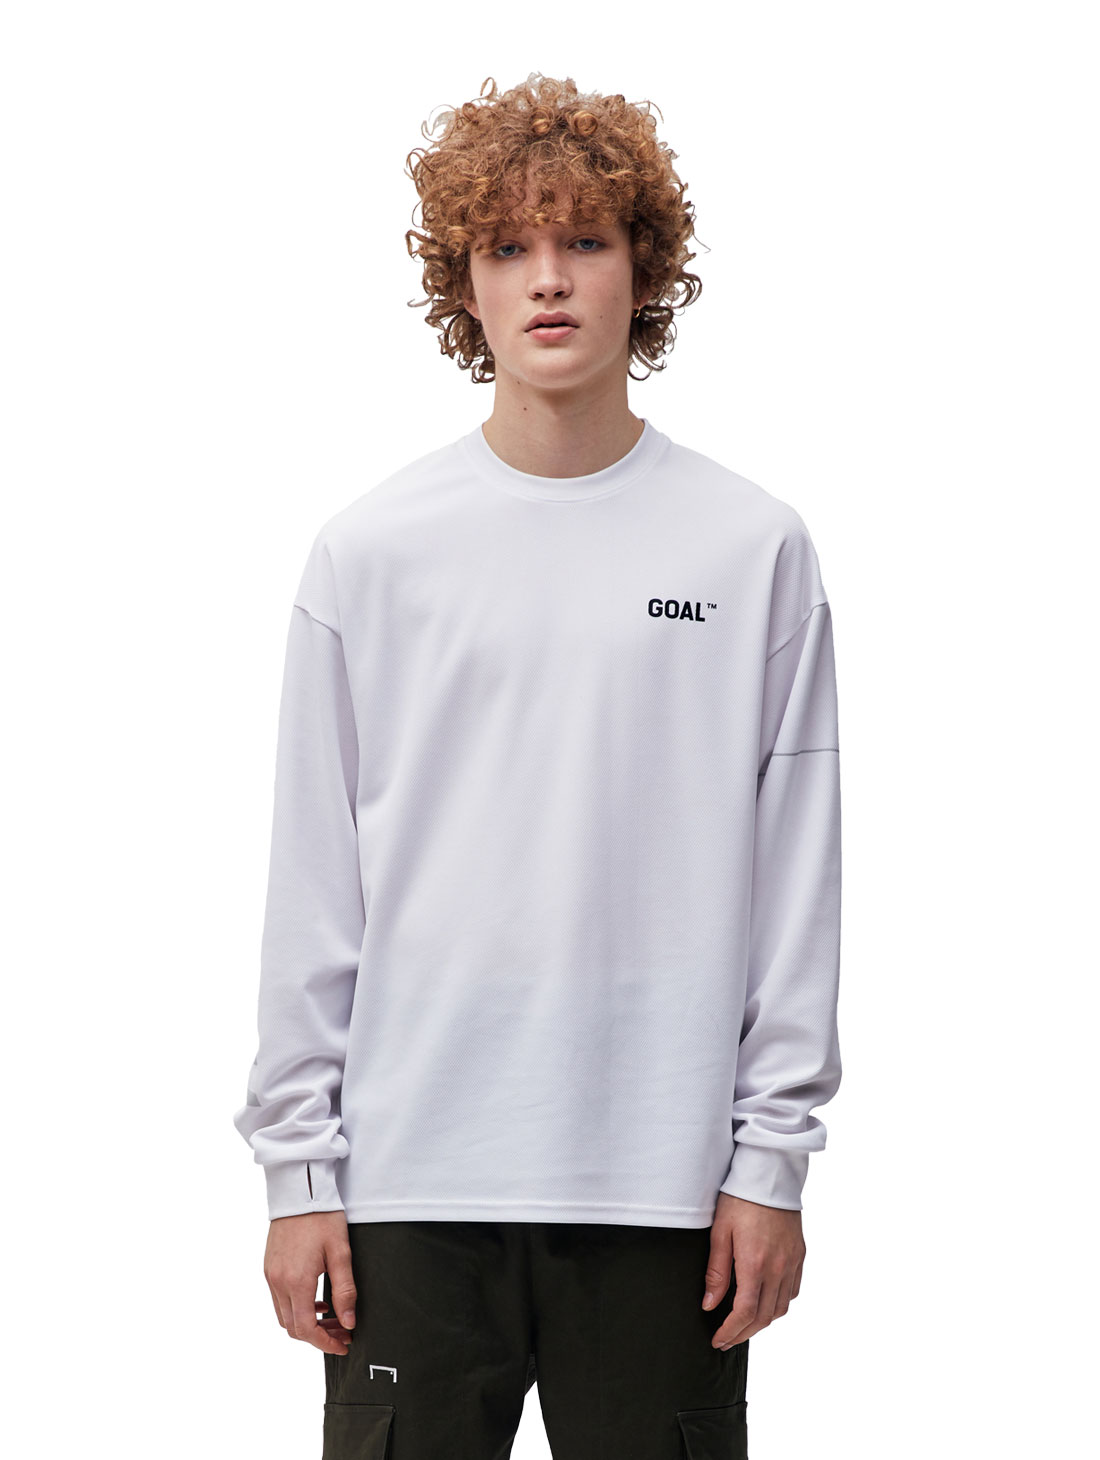 GOALSTUDIO RESPECT LONG SLEEVE TEE - WHITE